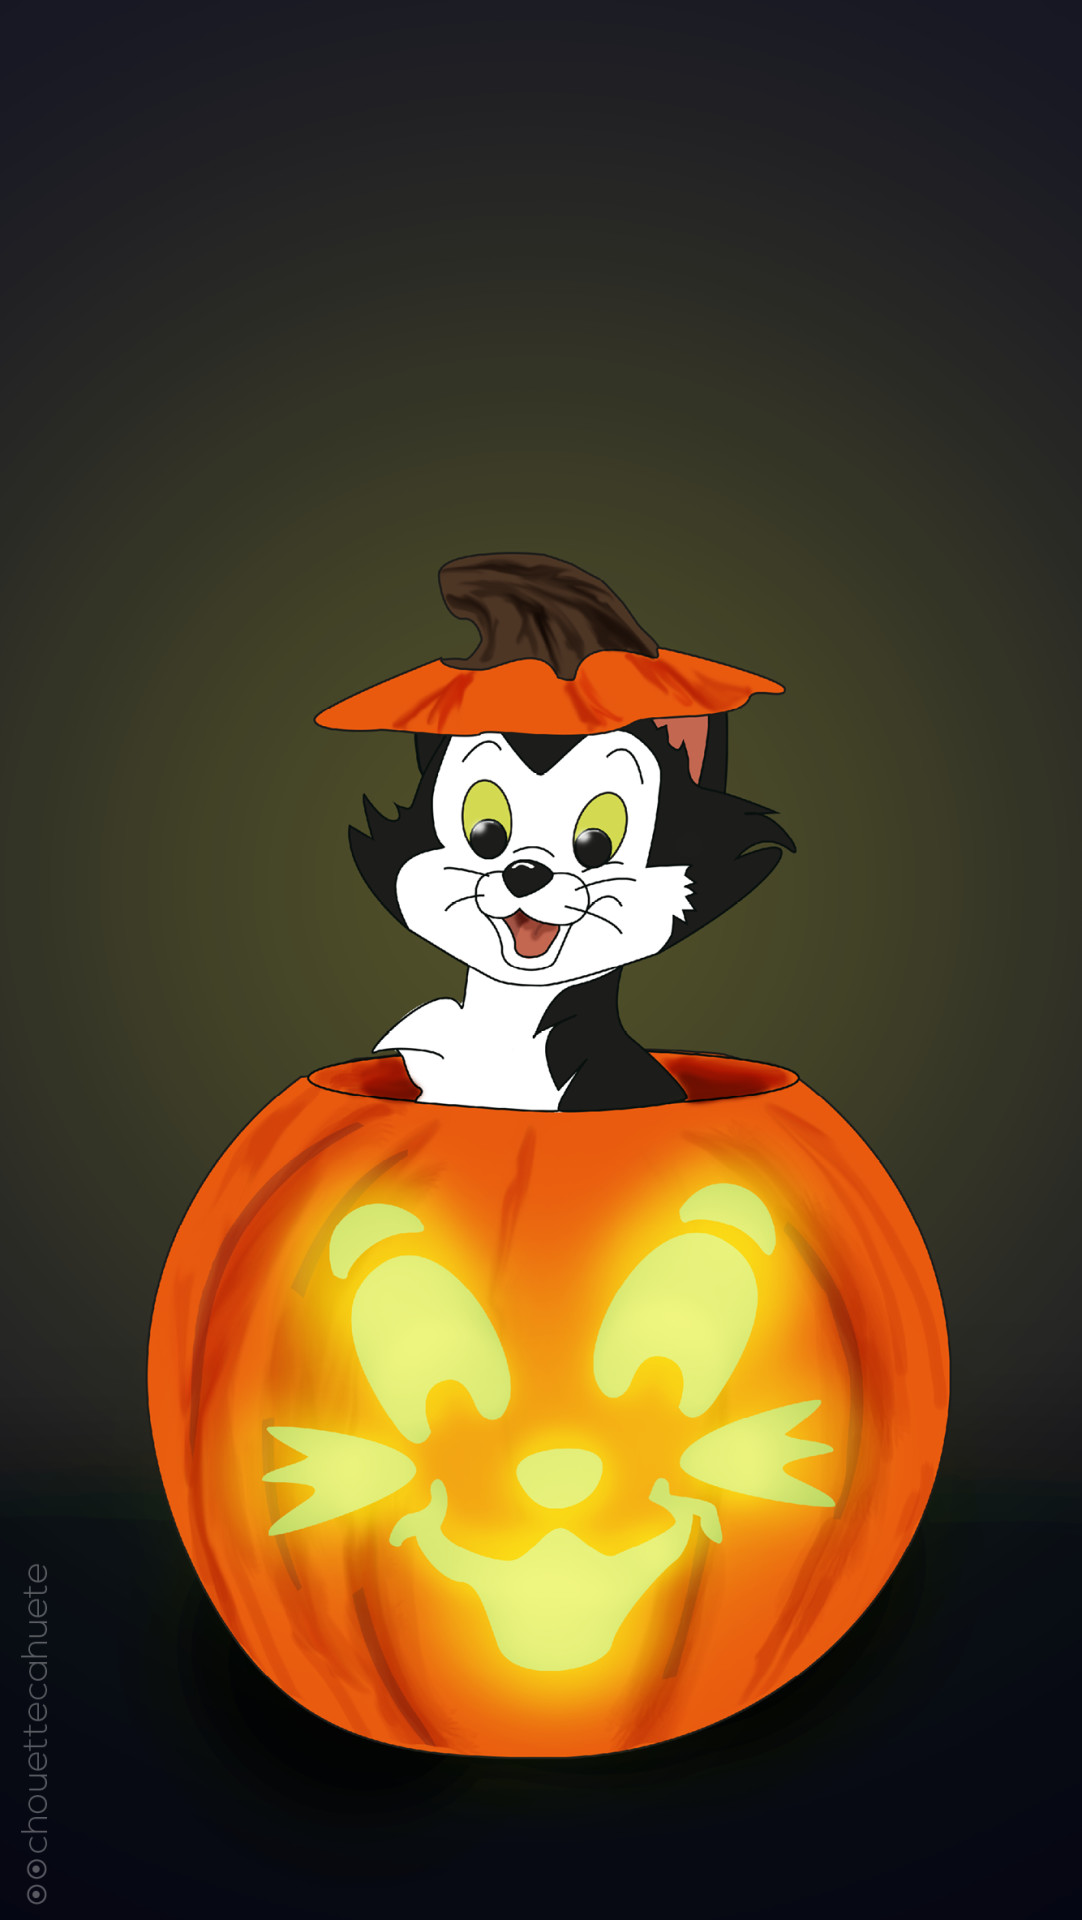 Iphone Halloween Disney Wallpapers Cute